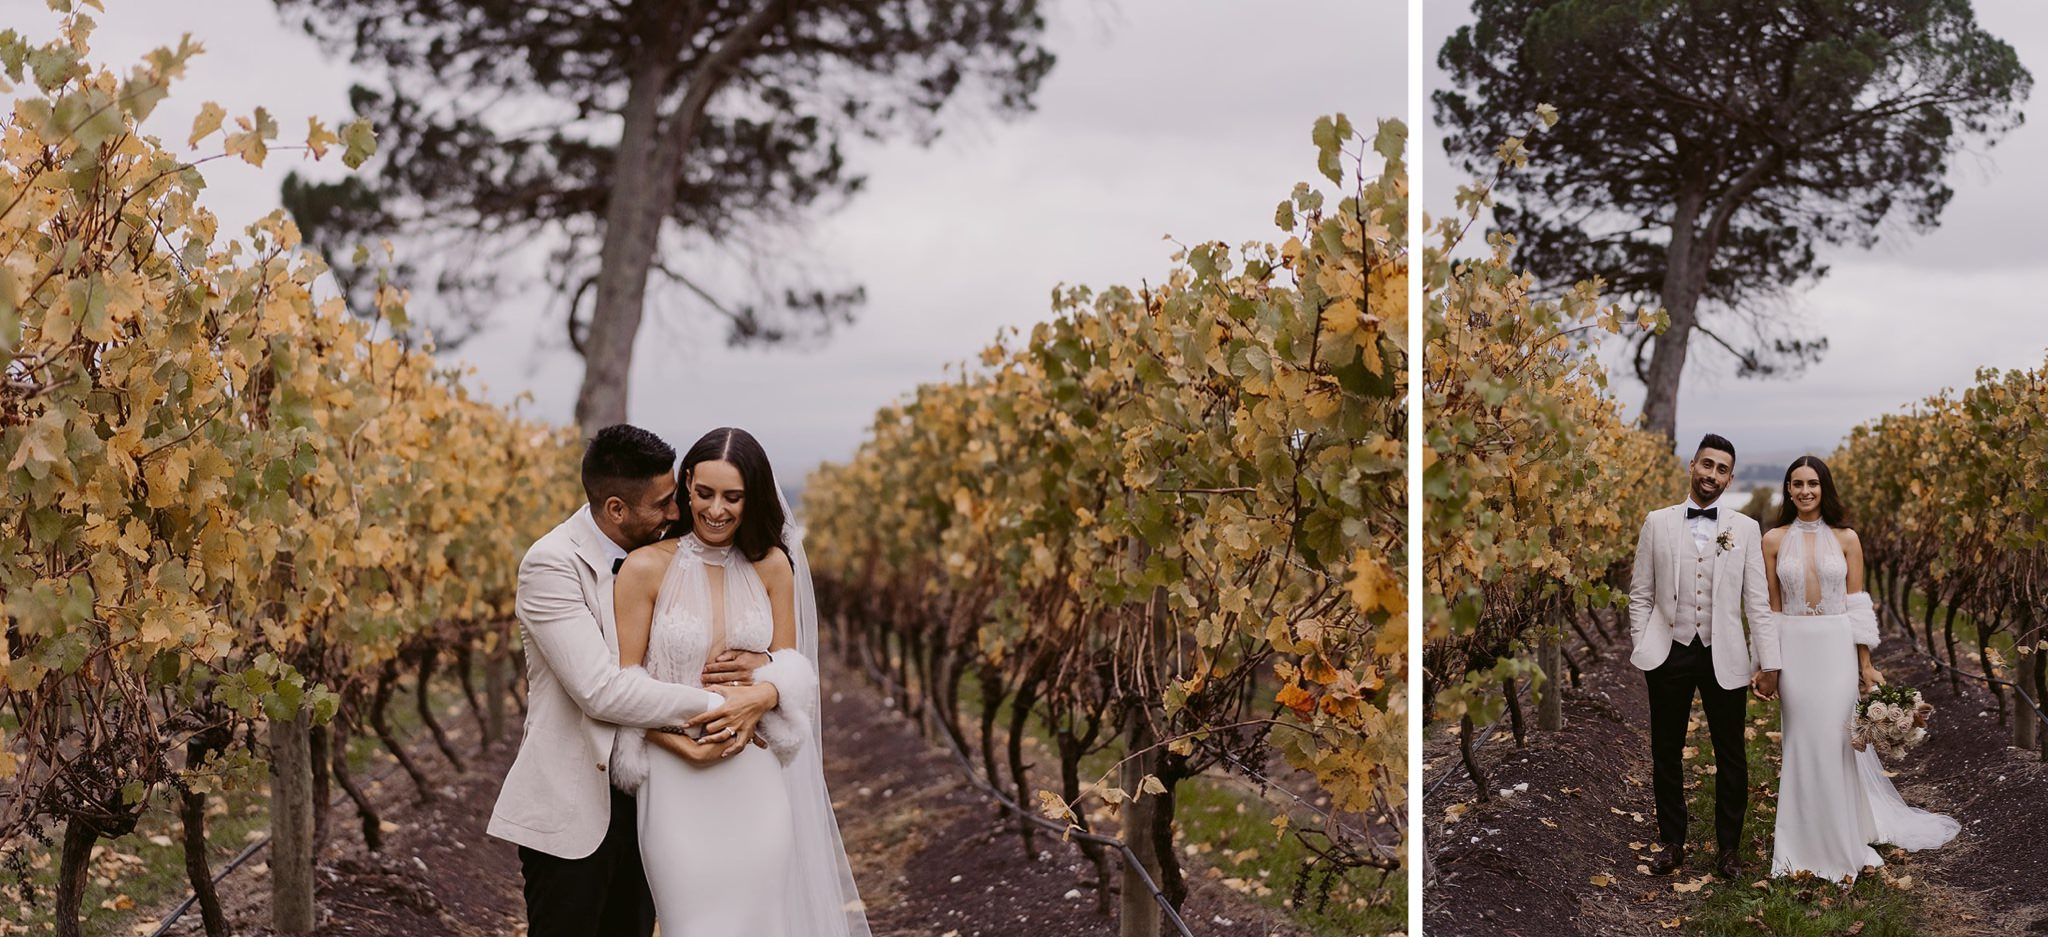 Stones of the Yarra Valley wedding photographer Ashleigh haase101.jpg